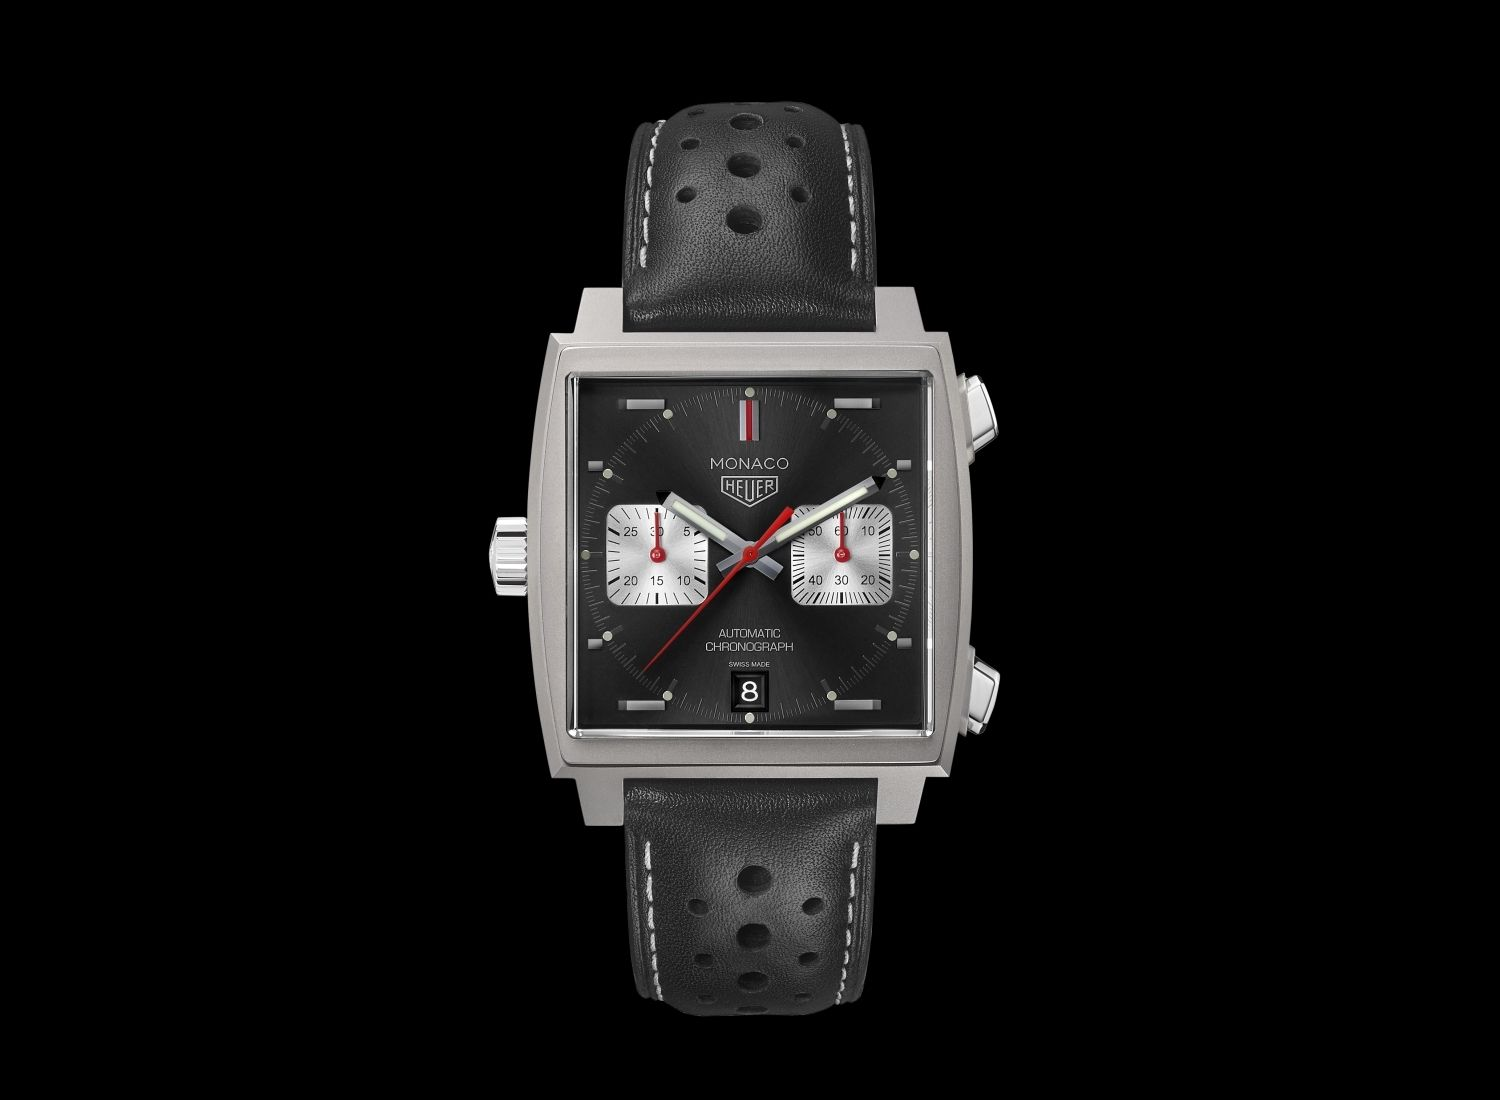 Tag Heuer Releases Its Fifth Limited Edition Monaco Watch For The Model's 50th Anniversary